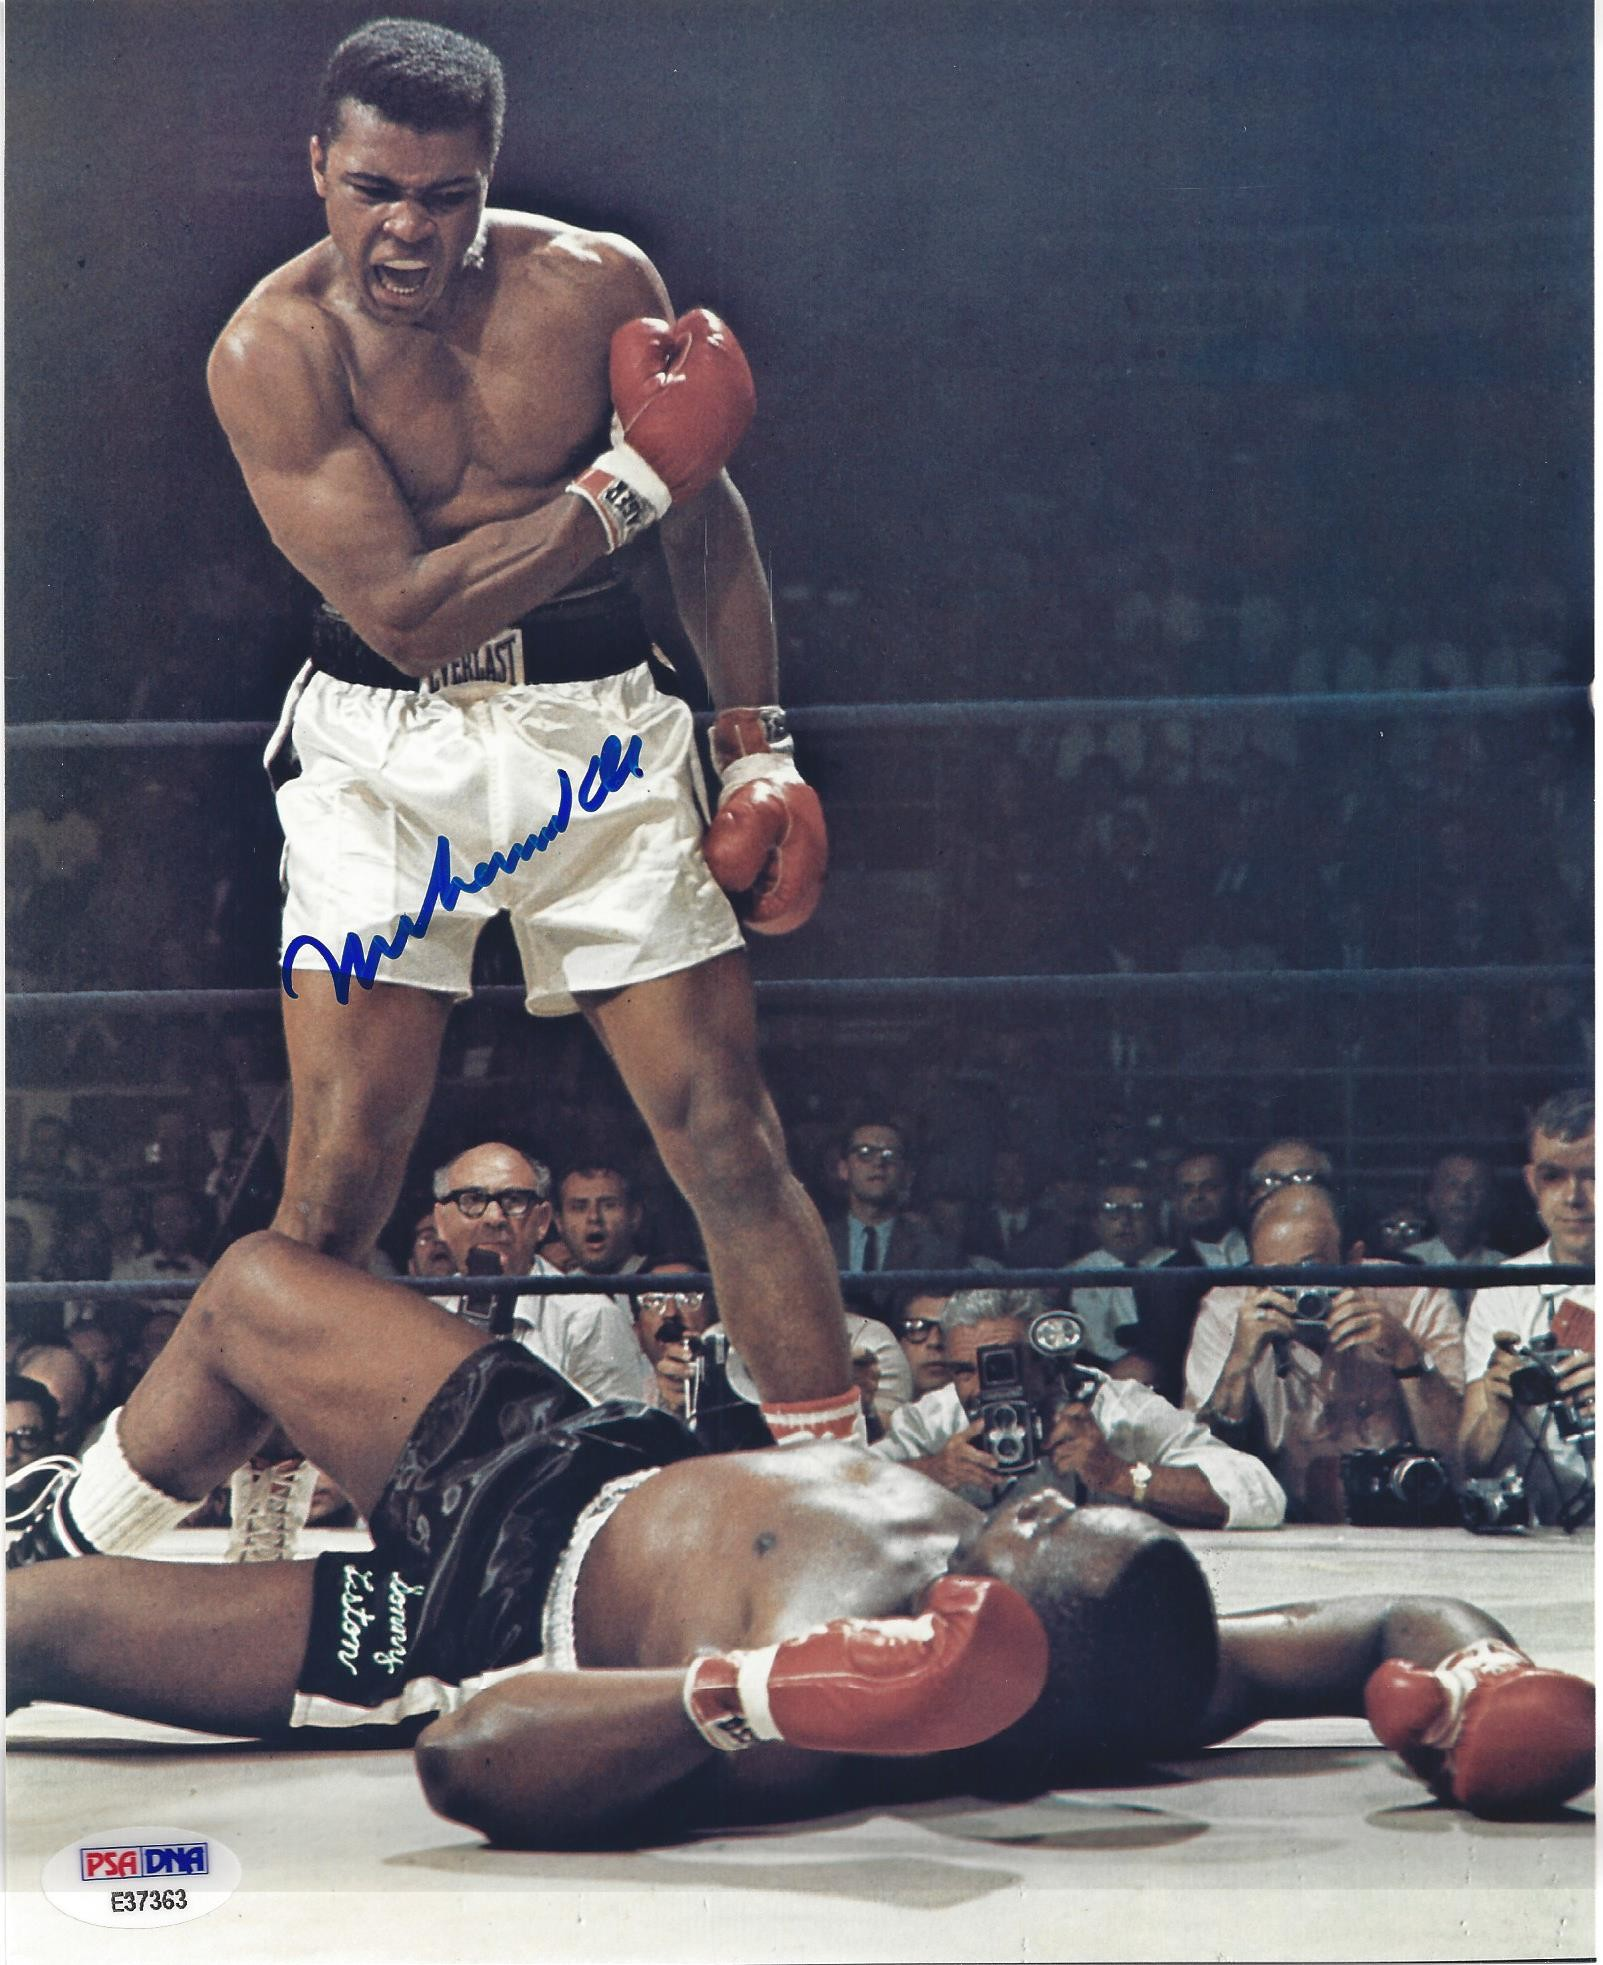 Signed 16x20 of Muhammad Ali after knocking down Sonny Liston in the ring Comes with Letter of Authenticity